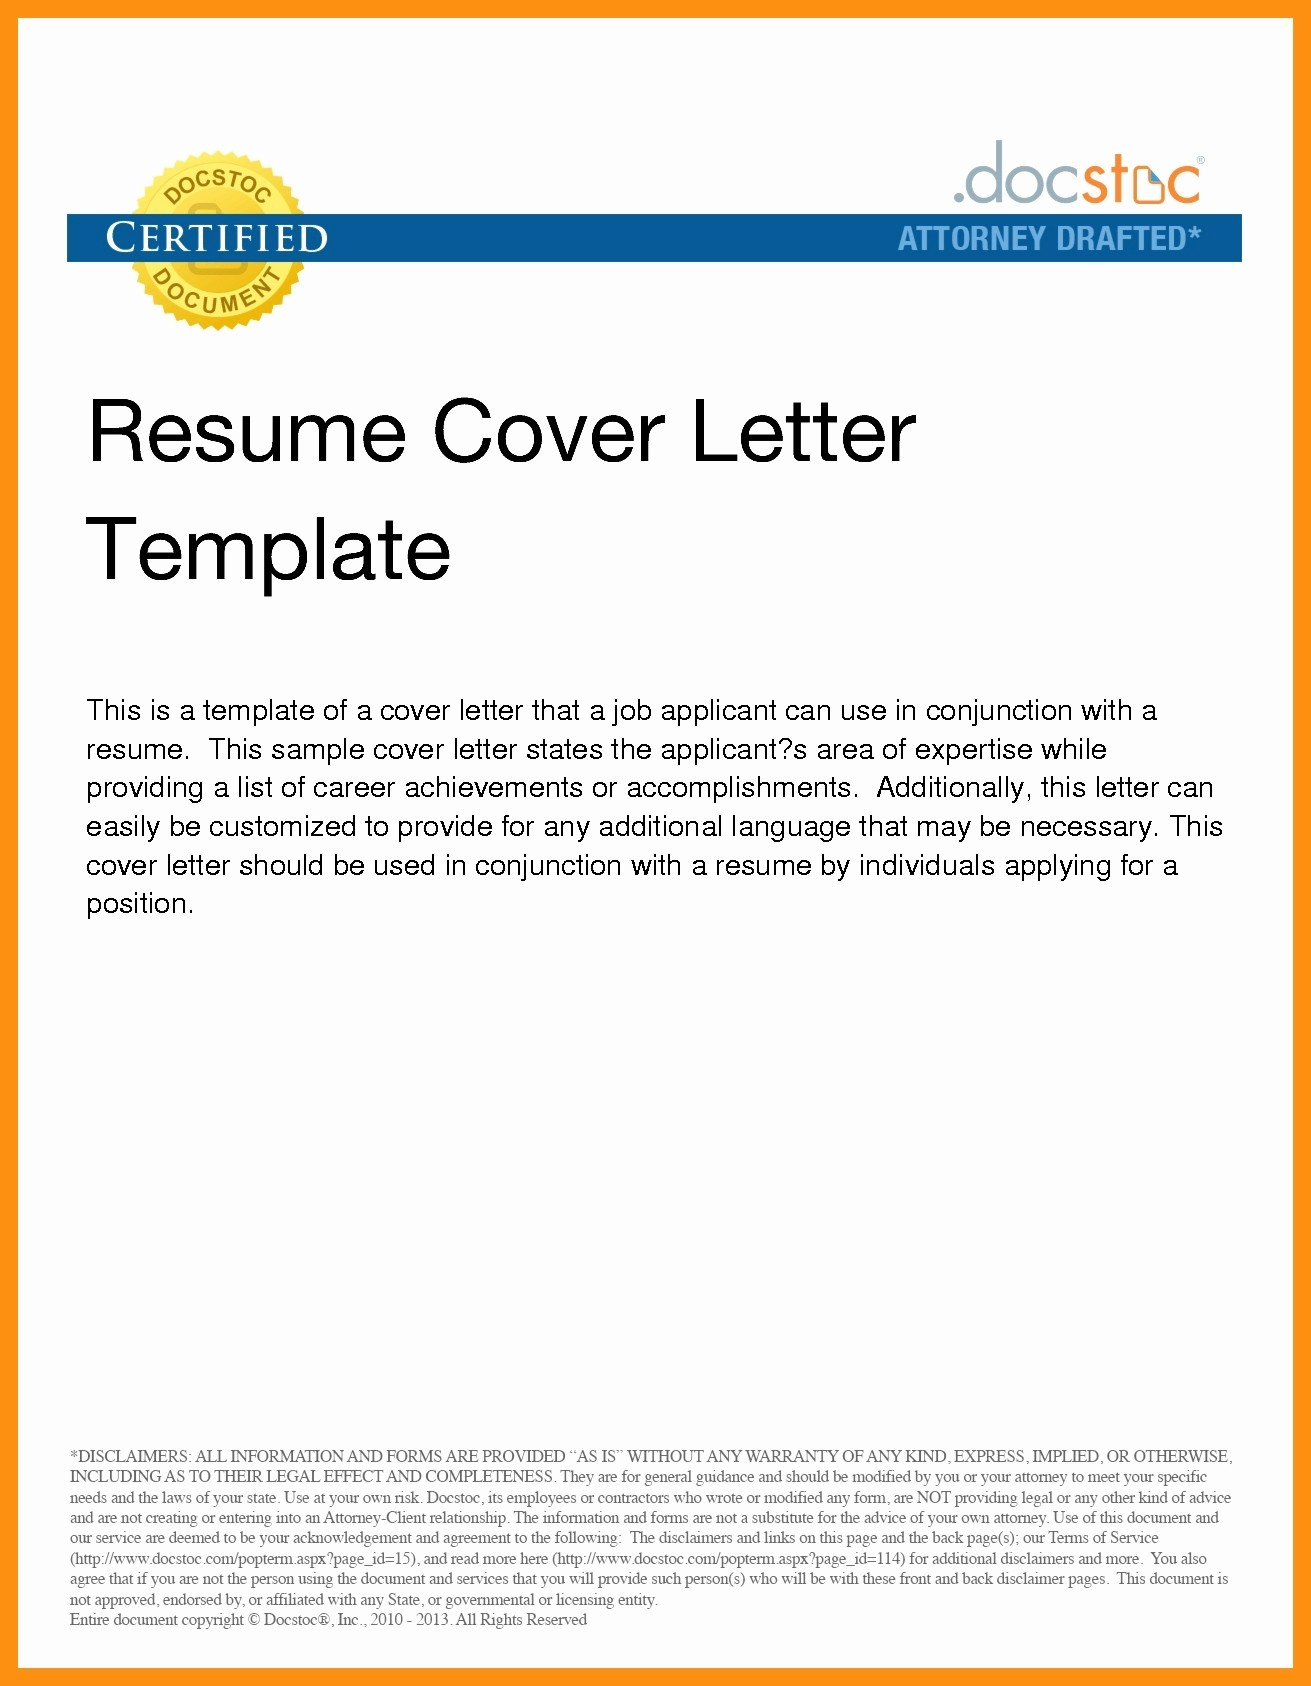 to write resume email cover letter sample send for job format emails sending by samples Resume Email Template For Sending A Resume